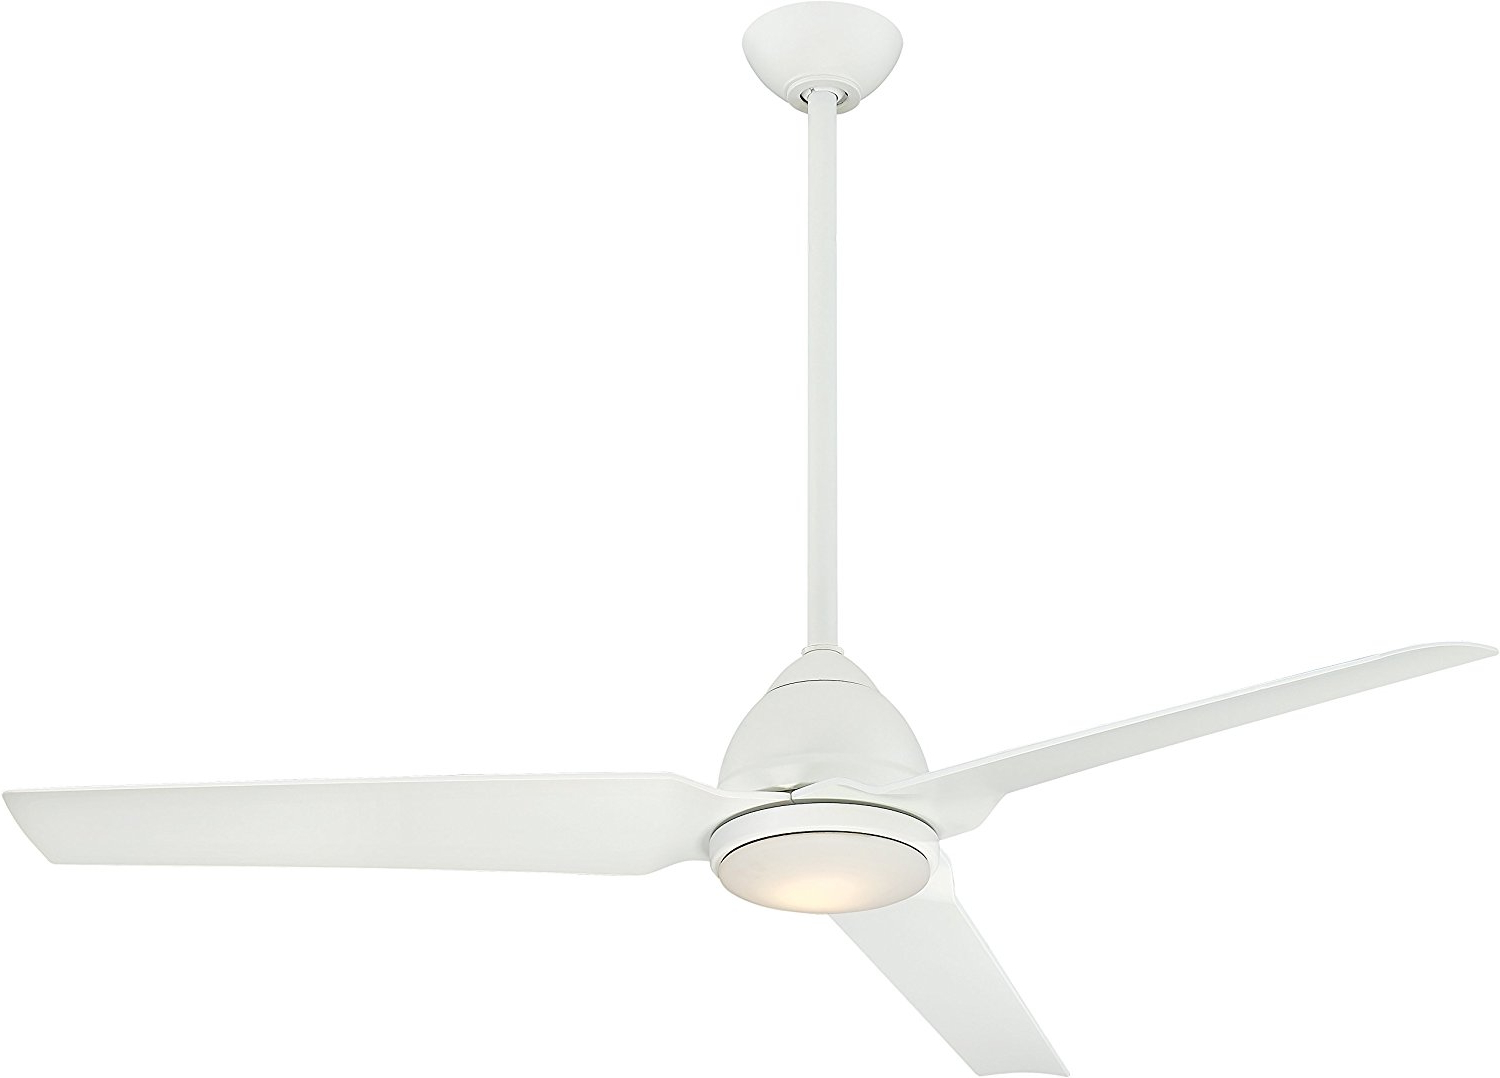 "Java 3 Blade Outdoor Ceiling Fans Intended For Most Popular Details About Minka Aire F753L Whf Java Led 54"" 3 Blade Ceiling Fan In Flat  White Finish (View 10 of 20)"